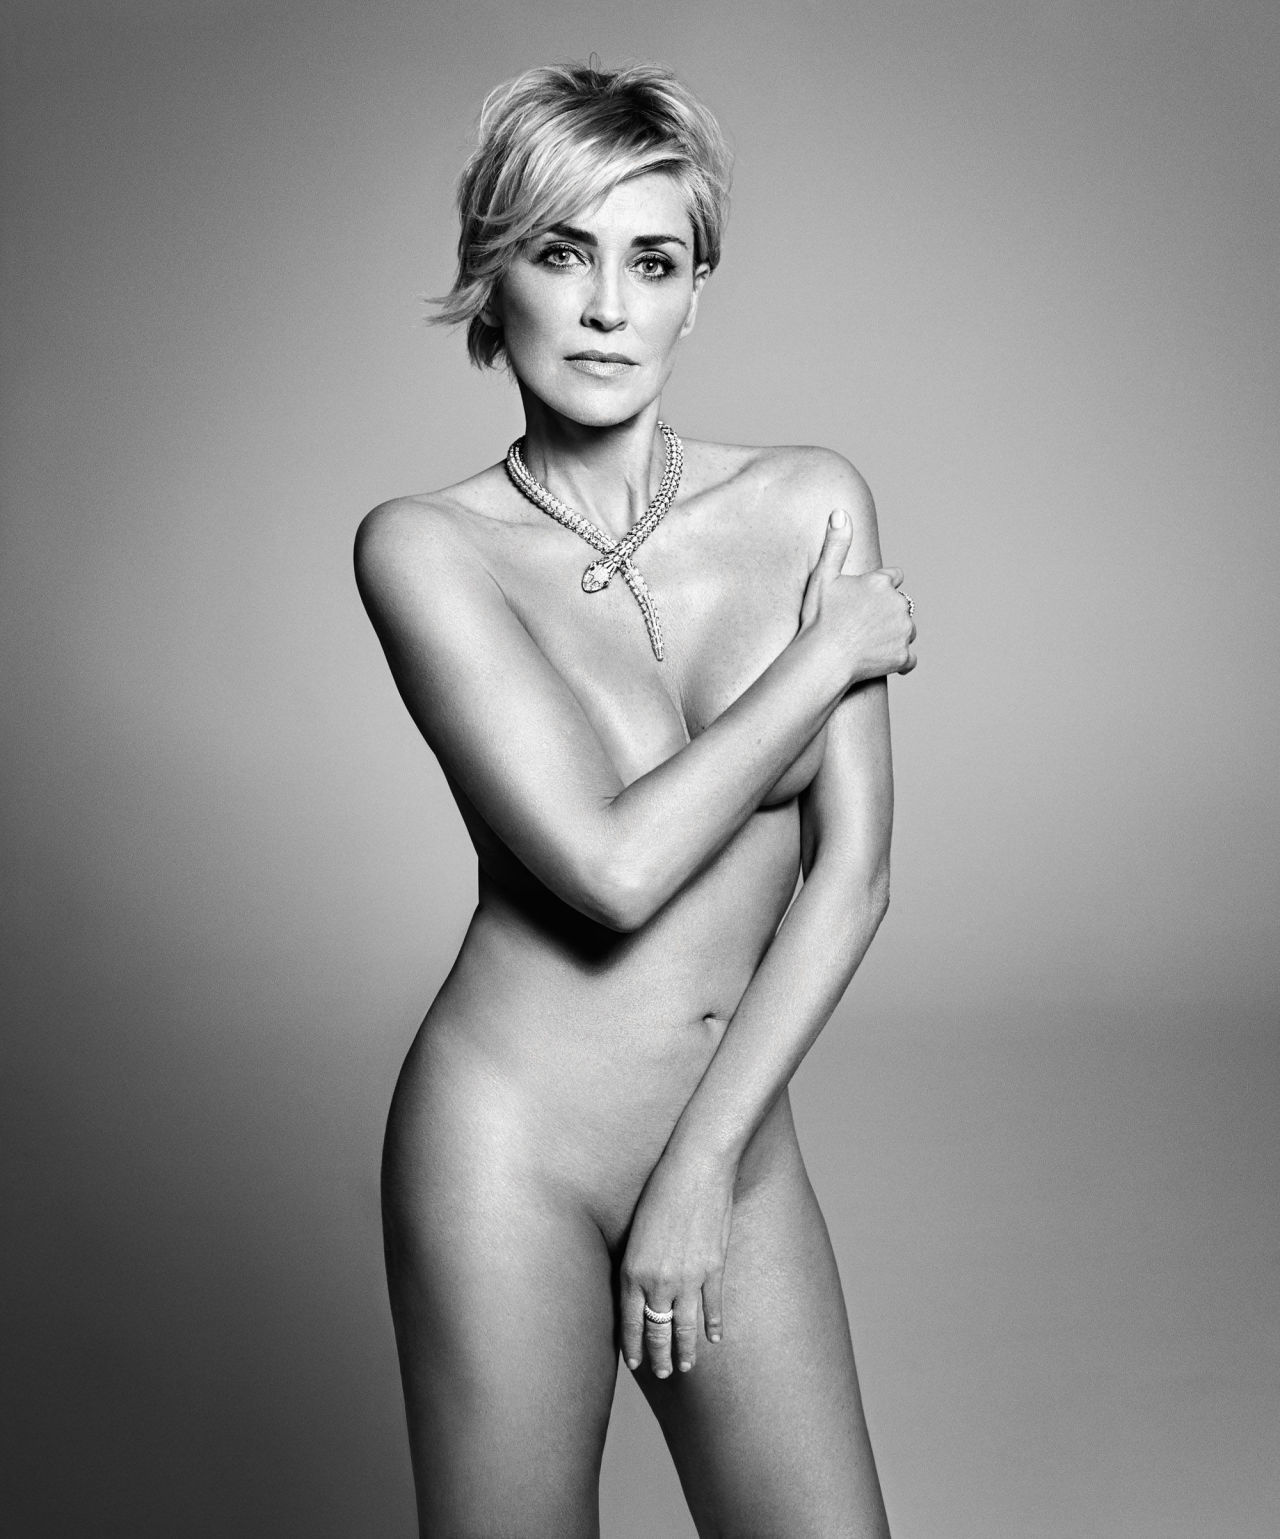 Sharon Stone - Harper's Bazaar September 2015 photoshoot